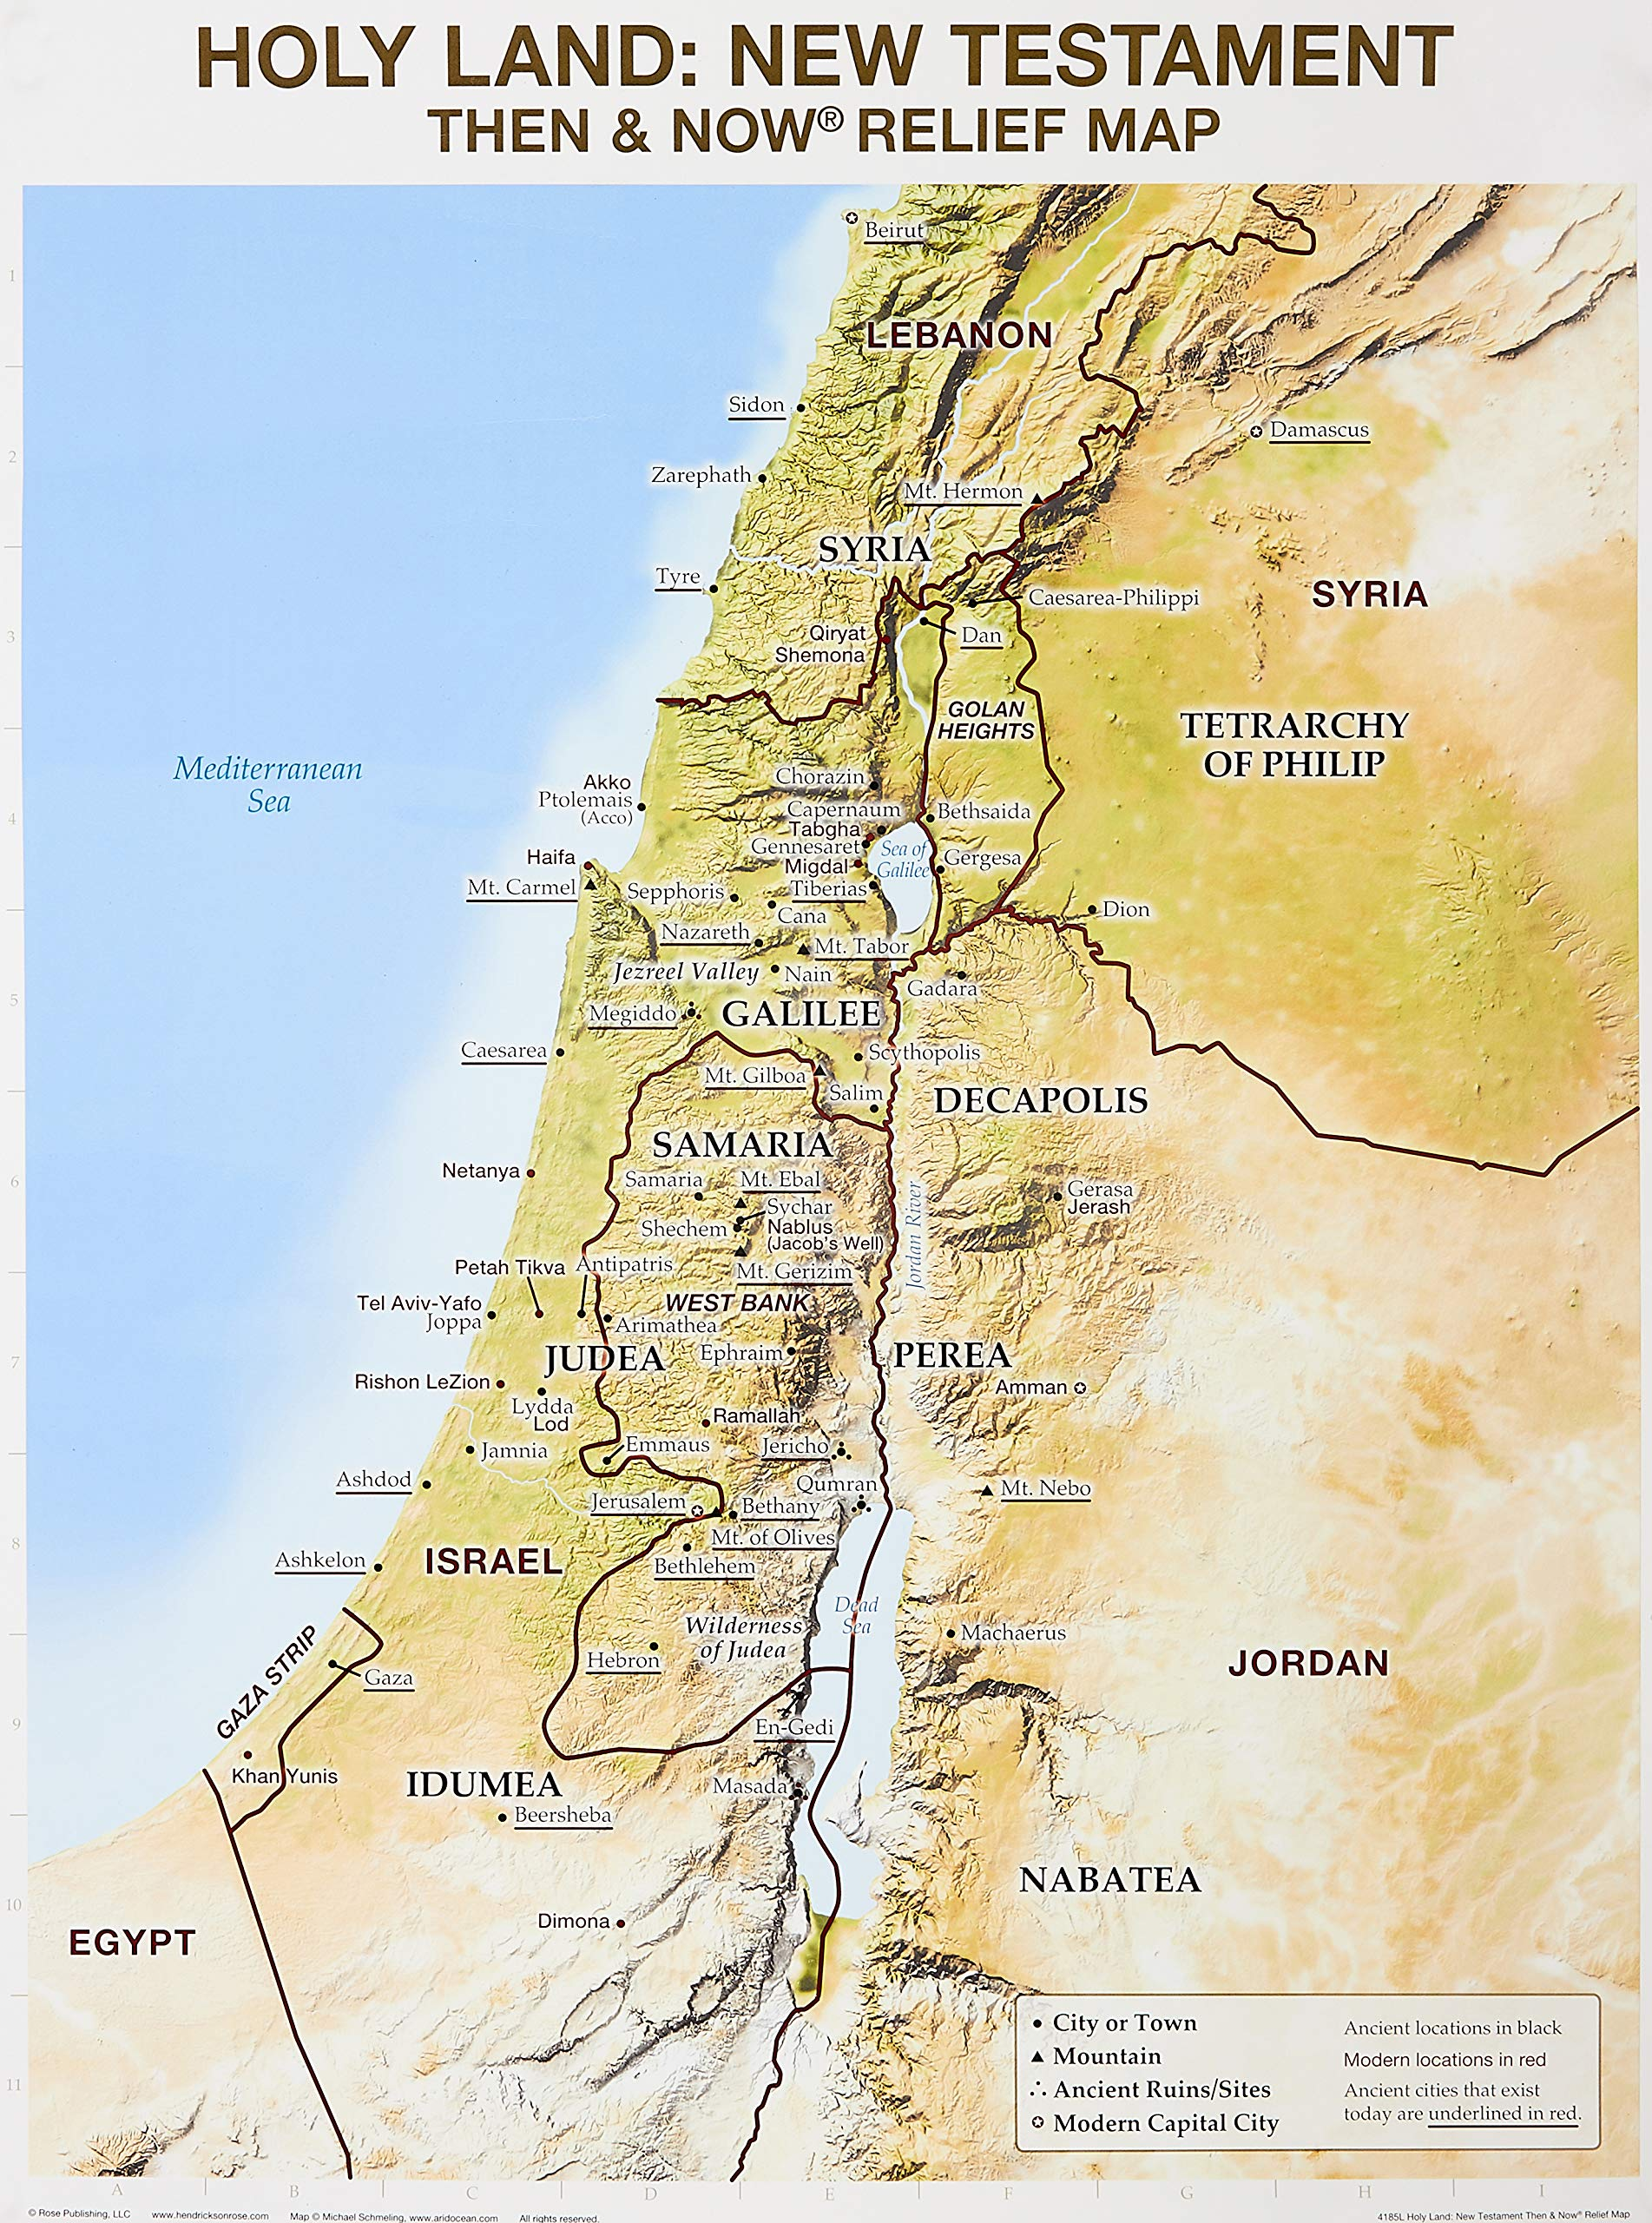 Wall Chart: Holy Land NT Relief Map: Rose Publishing ... on map of europe holy land, bible map holy land, printable map of holy land, map of holy land today, map of holy land during joshua, large map of holy land, map of jonah's time, map holy land israel, map of bethlehem, modern map of holy land, map holy land in jesus day, map of christian holy land, map of the holy land, map world holy land, map of holy land jesus, cities in the holy land, map of jewish holy land, model of jerusalem holy land, current map of holy land, biblical map holy land,